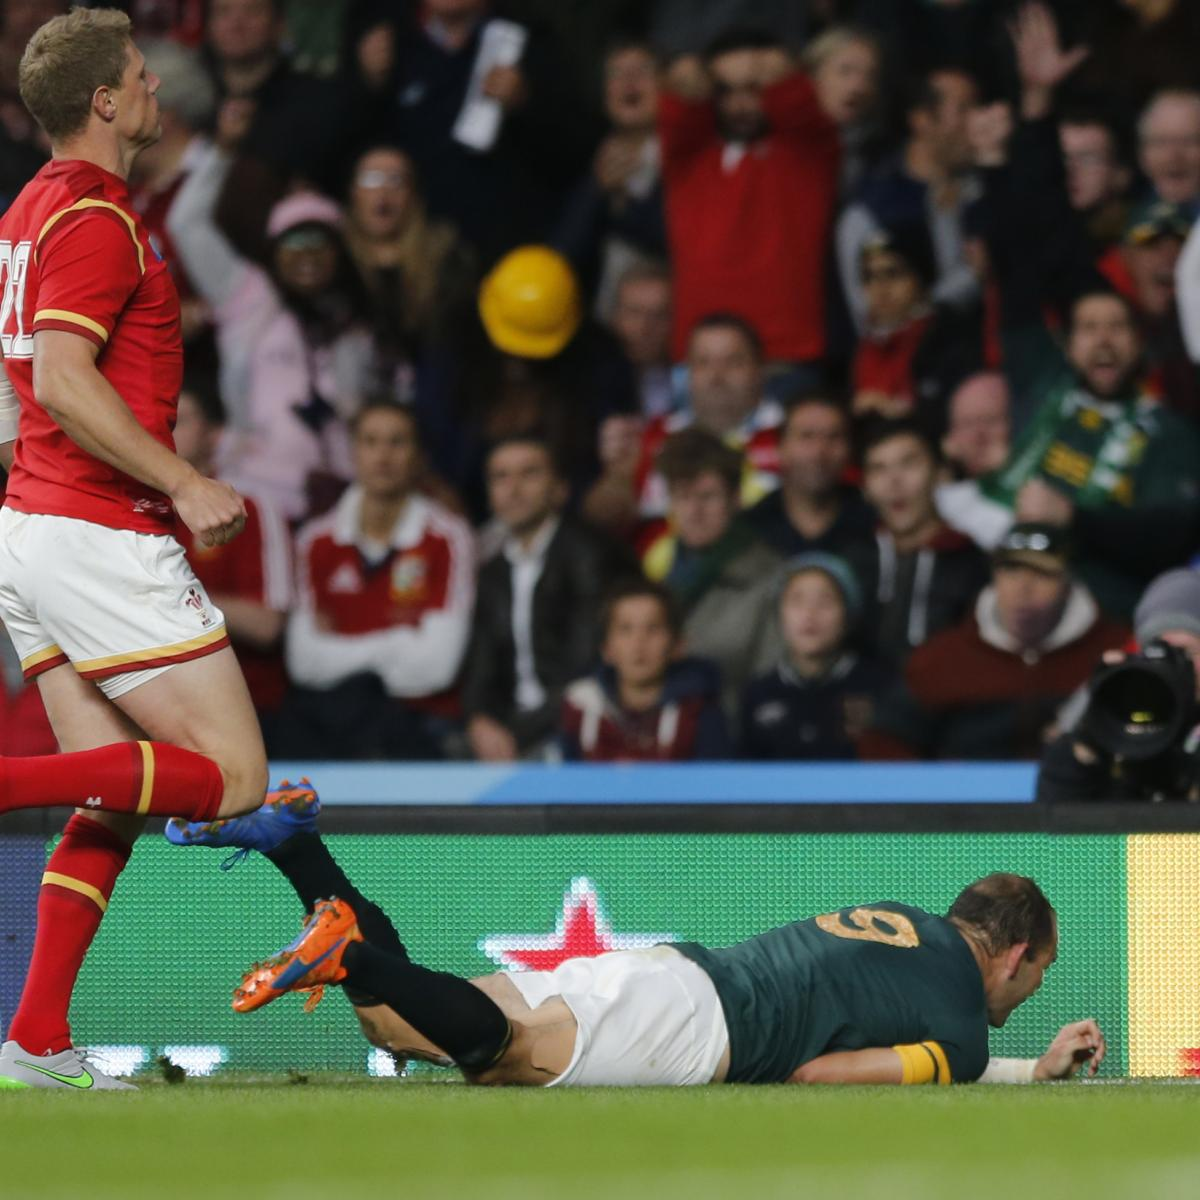 South West Rugby Cups: South Africa Vs. Wales: Score, Reaction From Rugby World